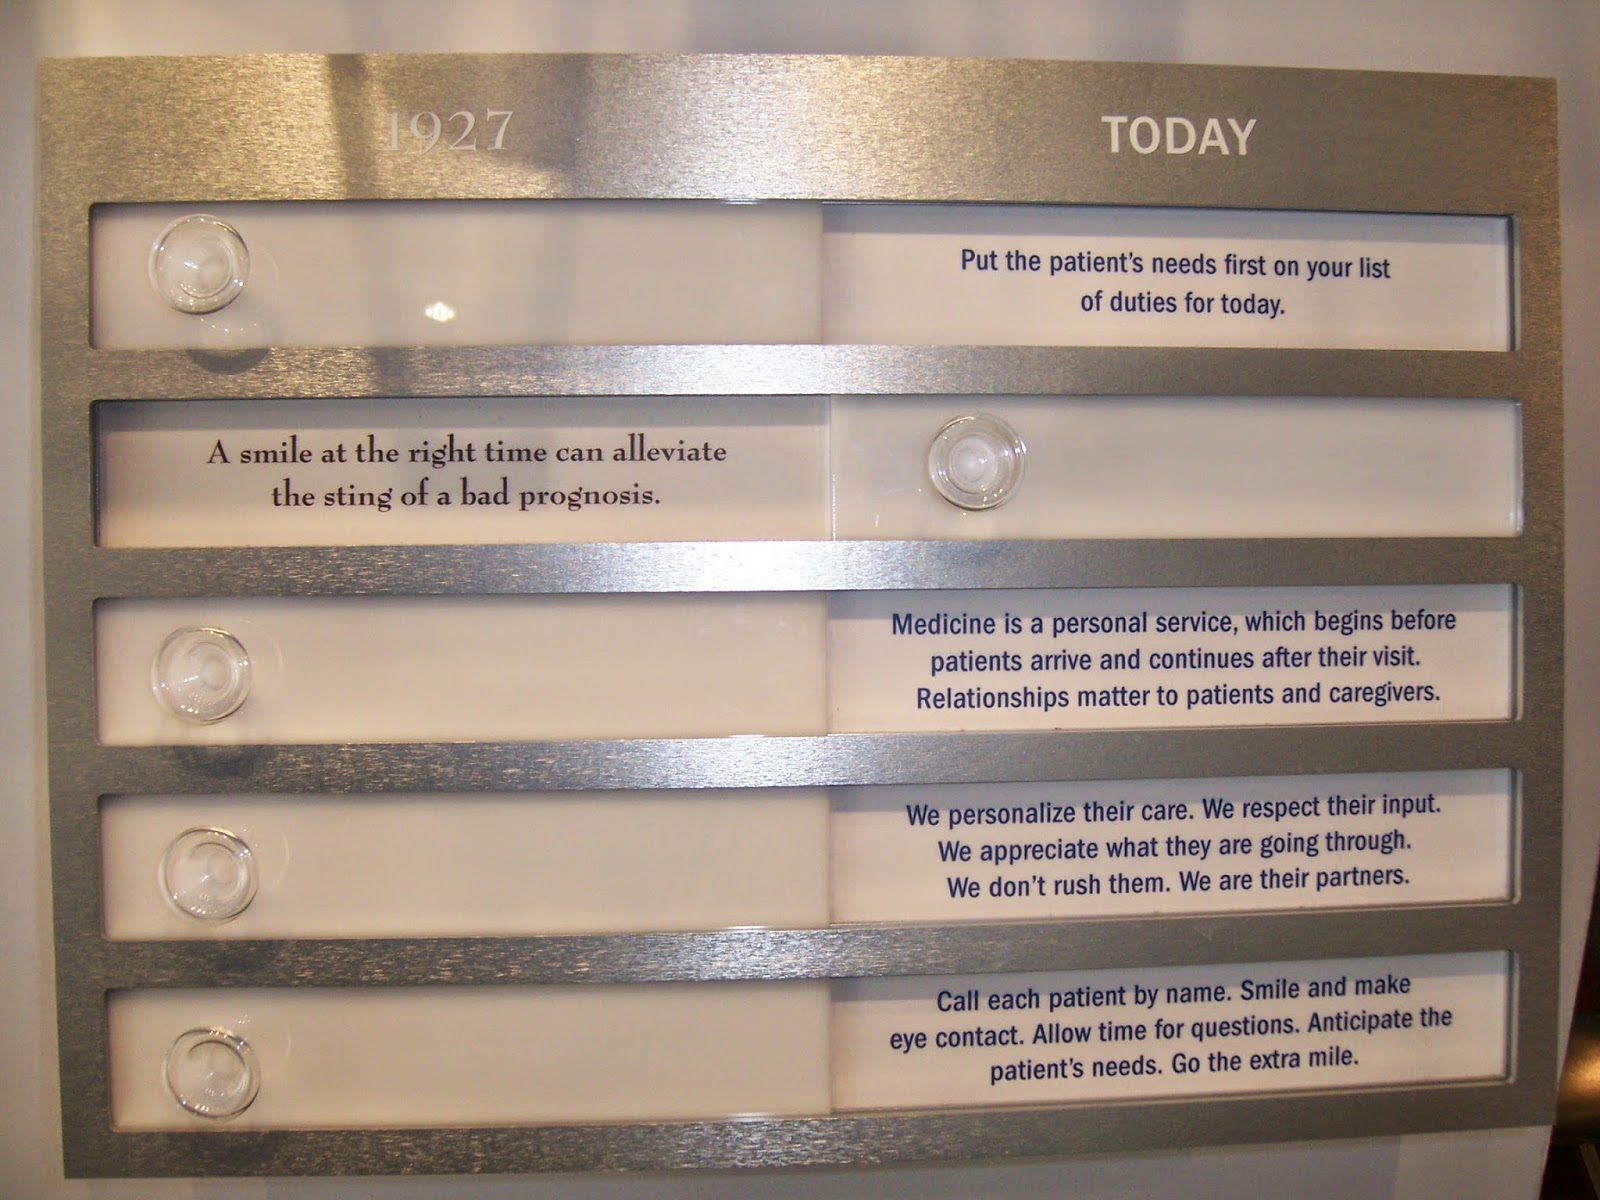 Mayo Clinic interactive museum display